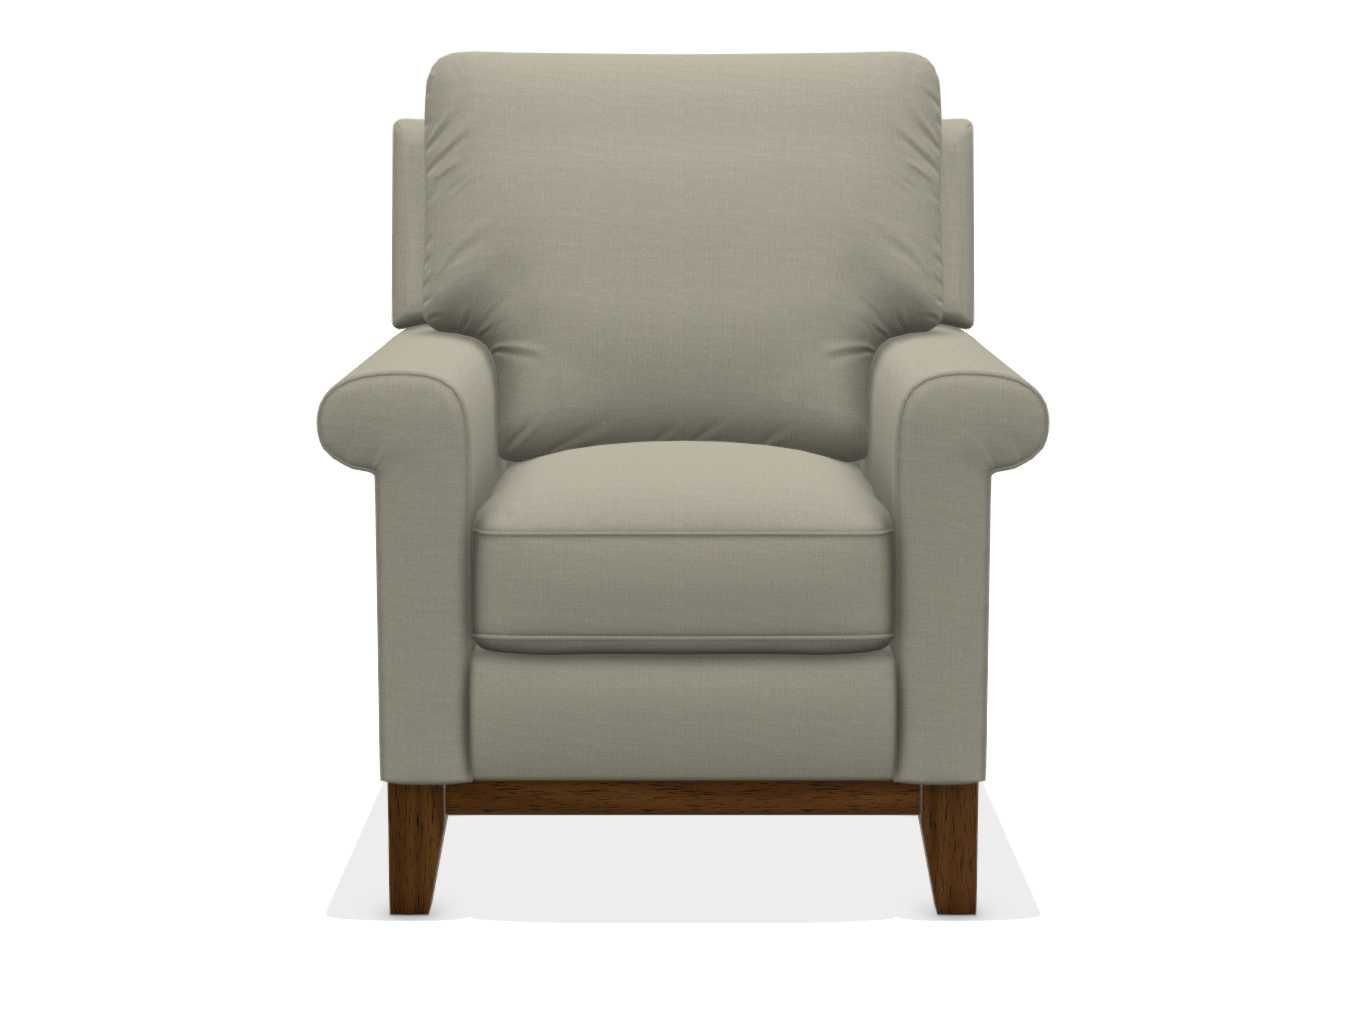 Ferndale Press Back Reclining Chair | Stylish chairs, Chair